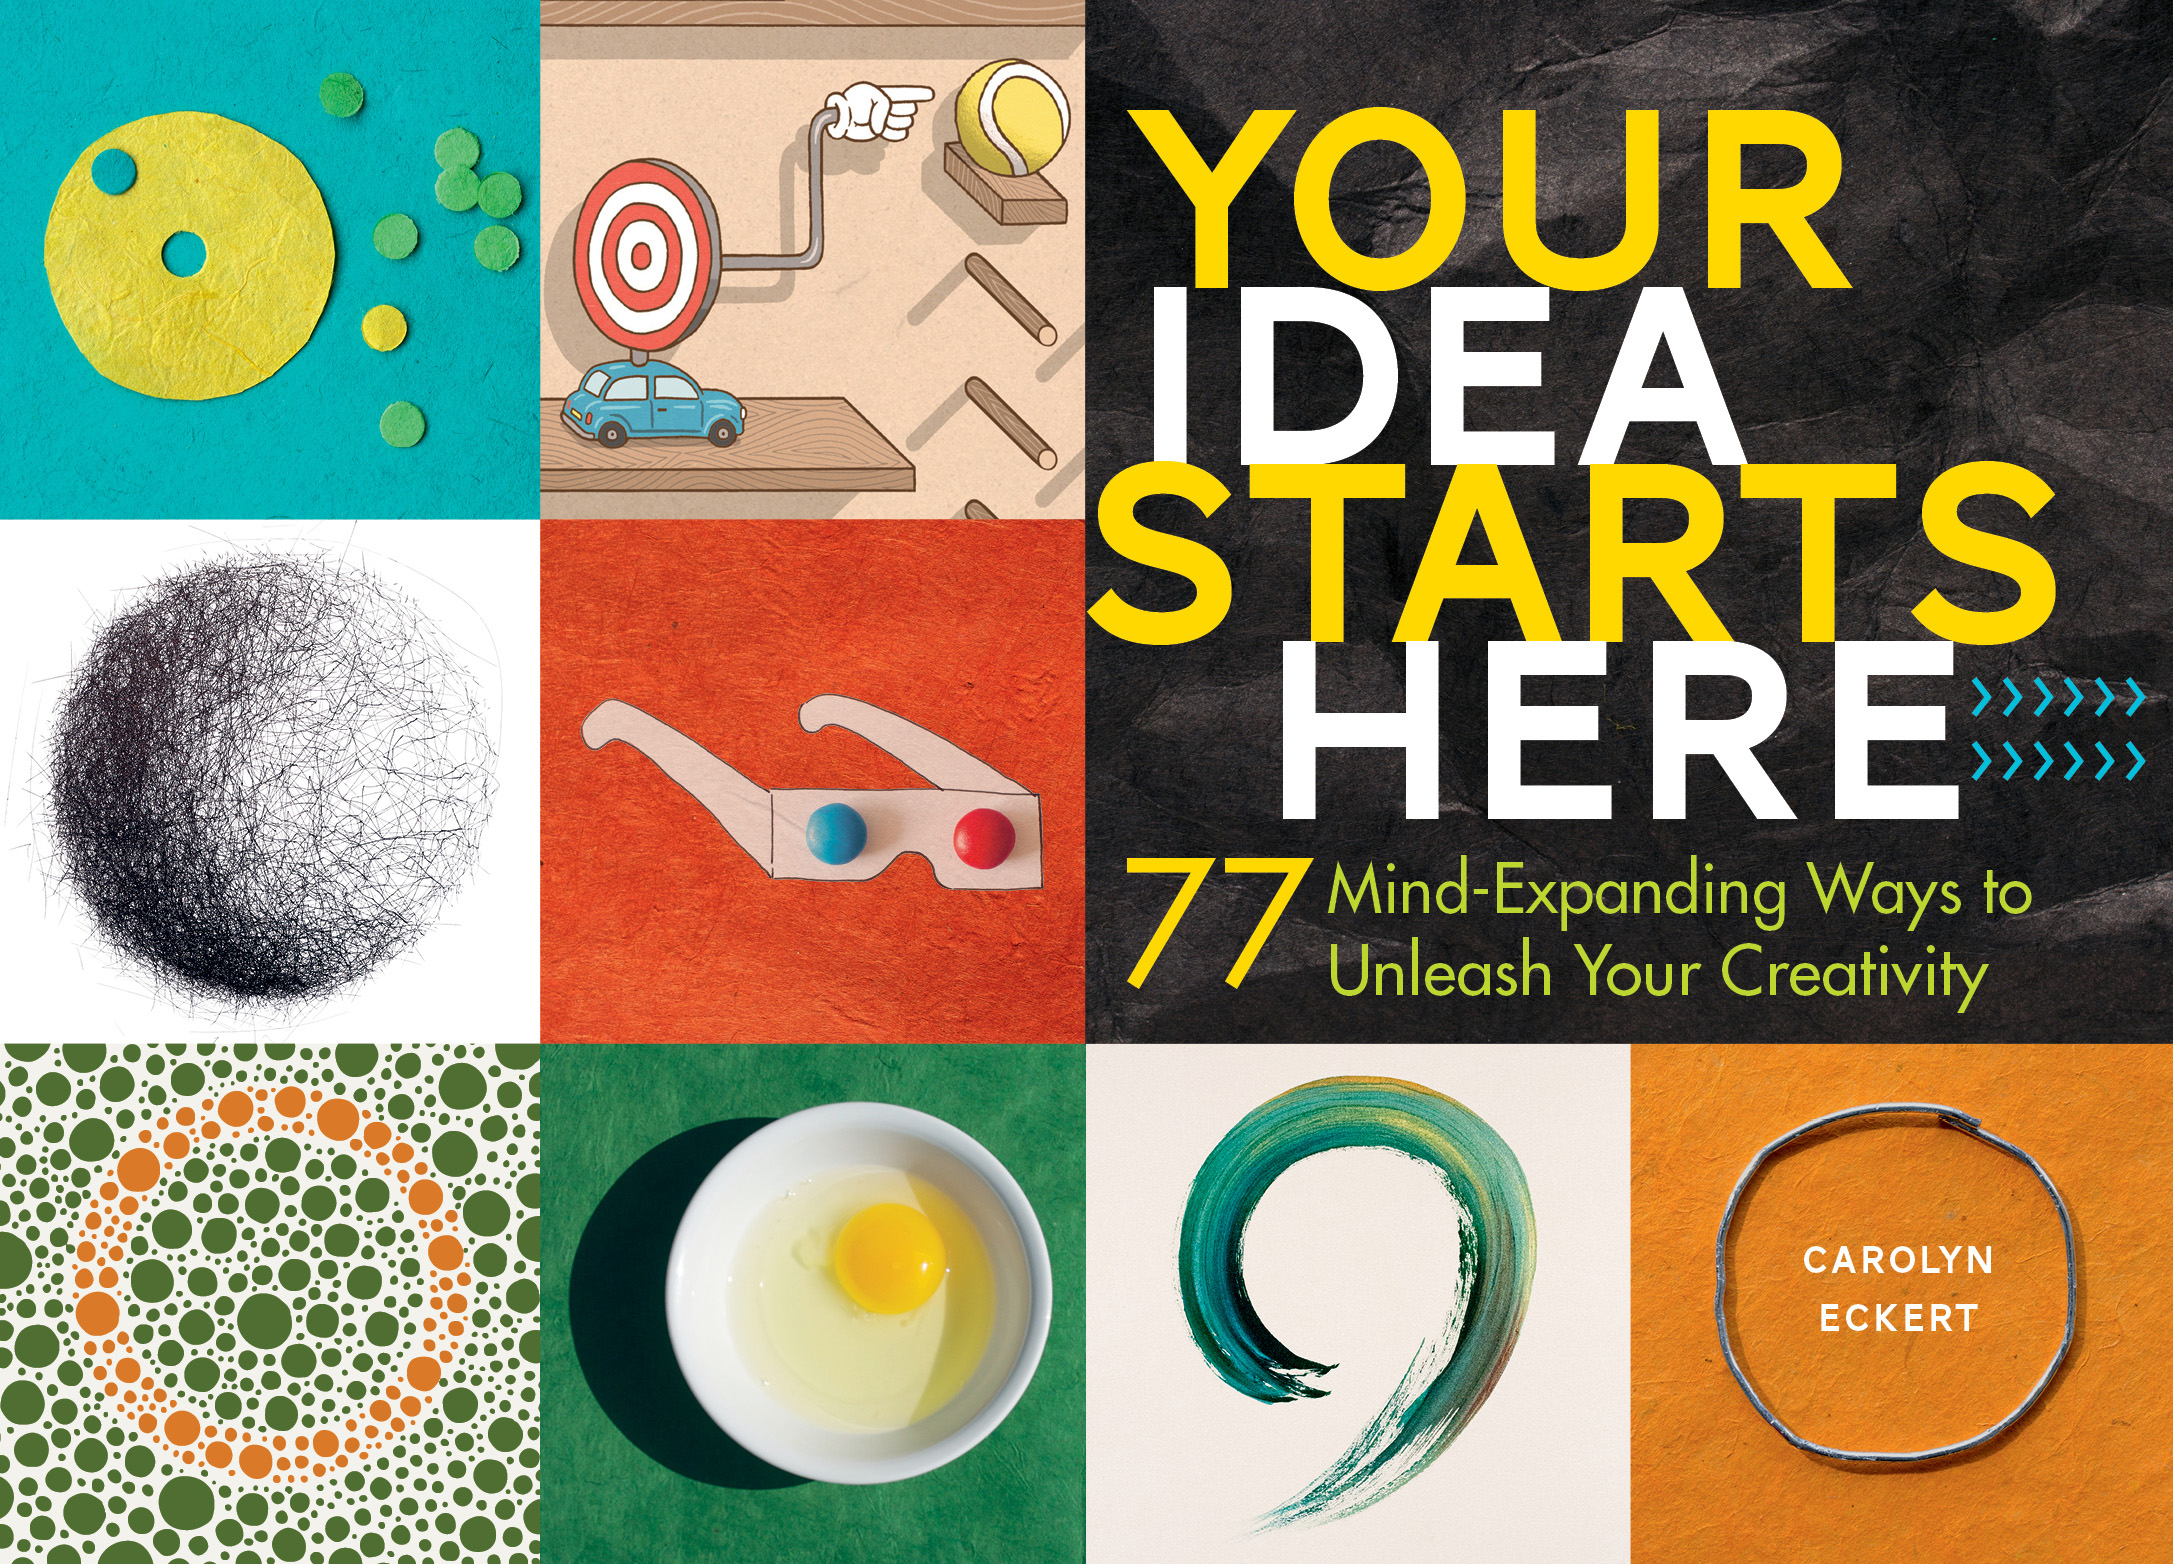 Your Idea Starts Here 77 Mind-Expanding Ways to Unleash Your Creativity - Carolyn Eckert